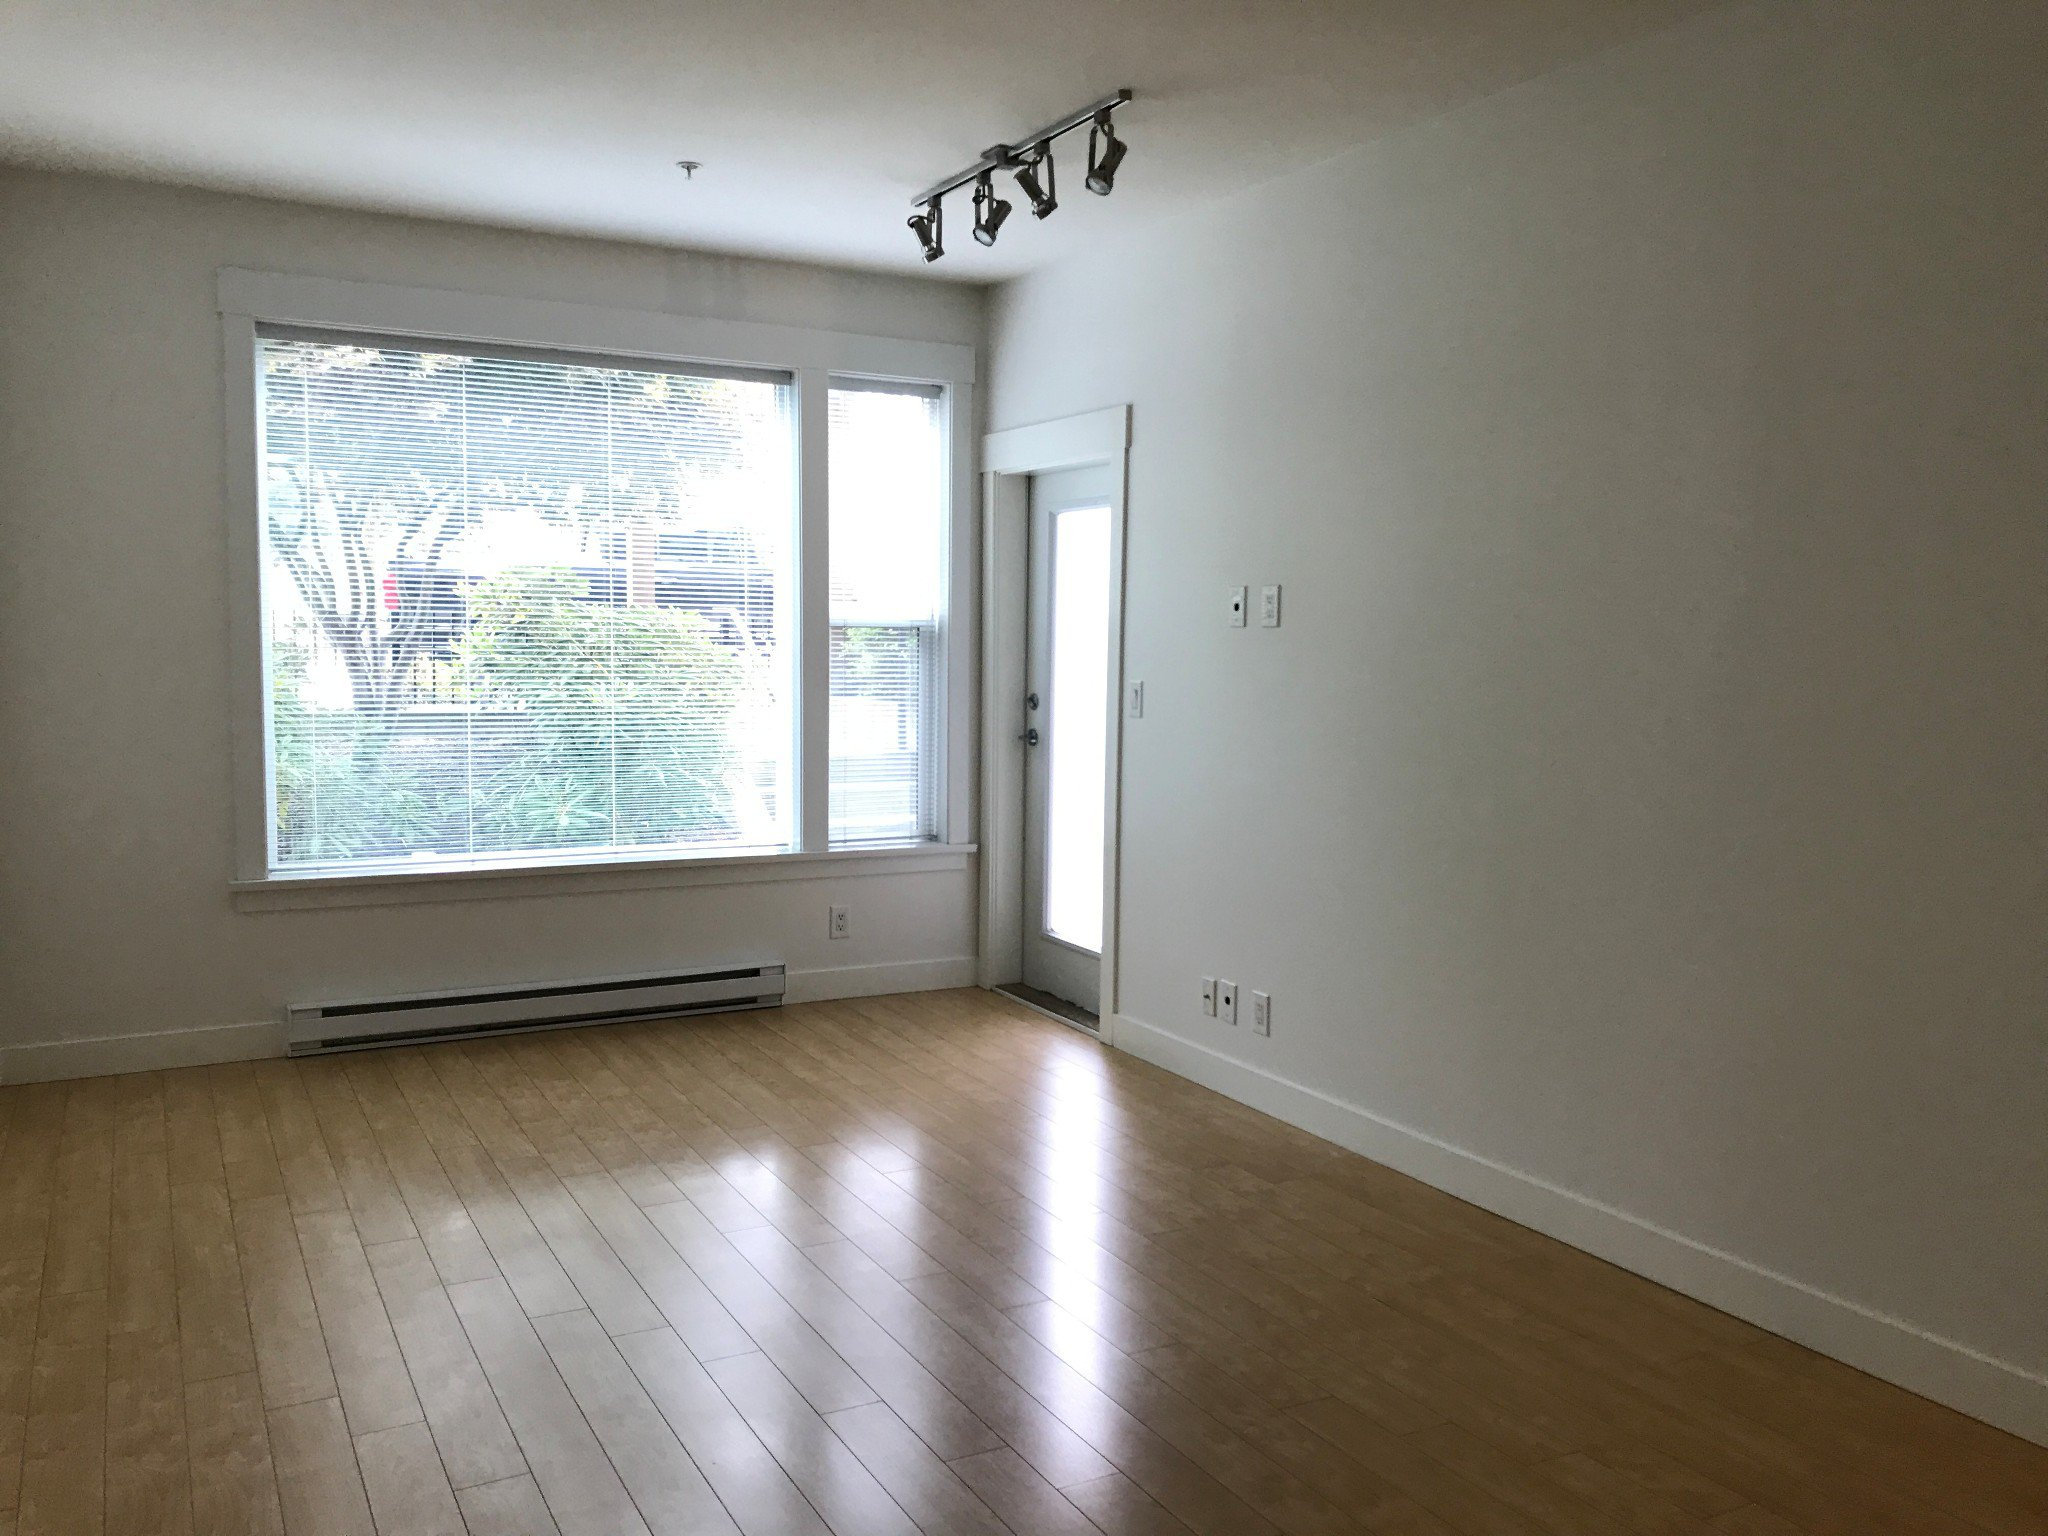 Photo 4: Photos: #114 33539 Holland Ave in Abbotsford: Central Abbotsford Condo for rent